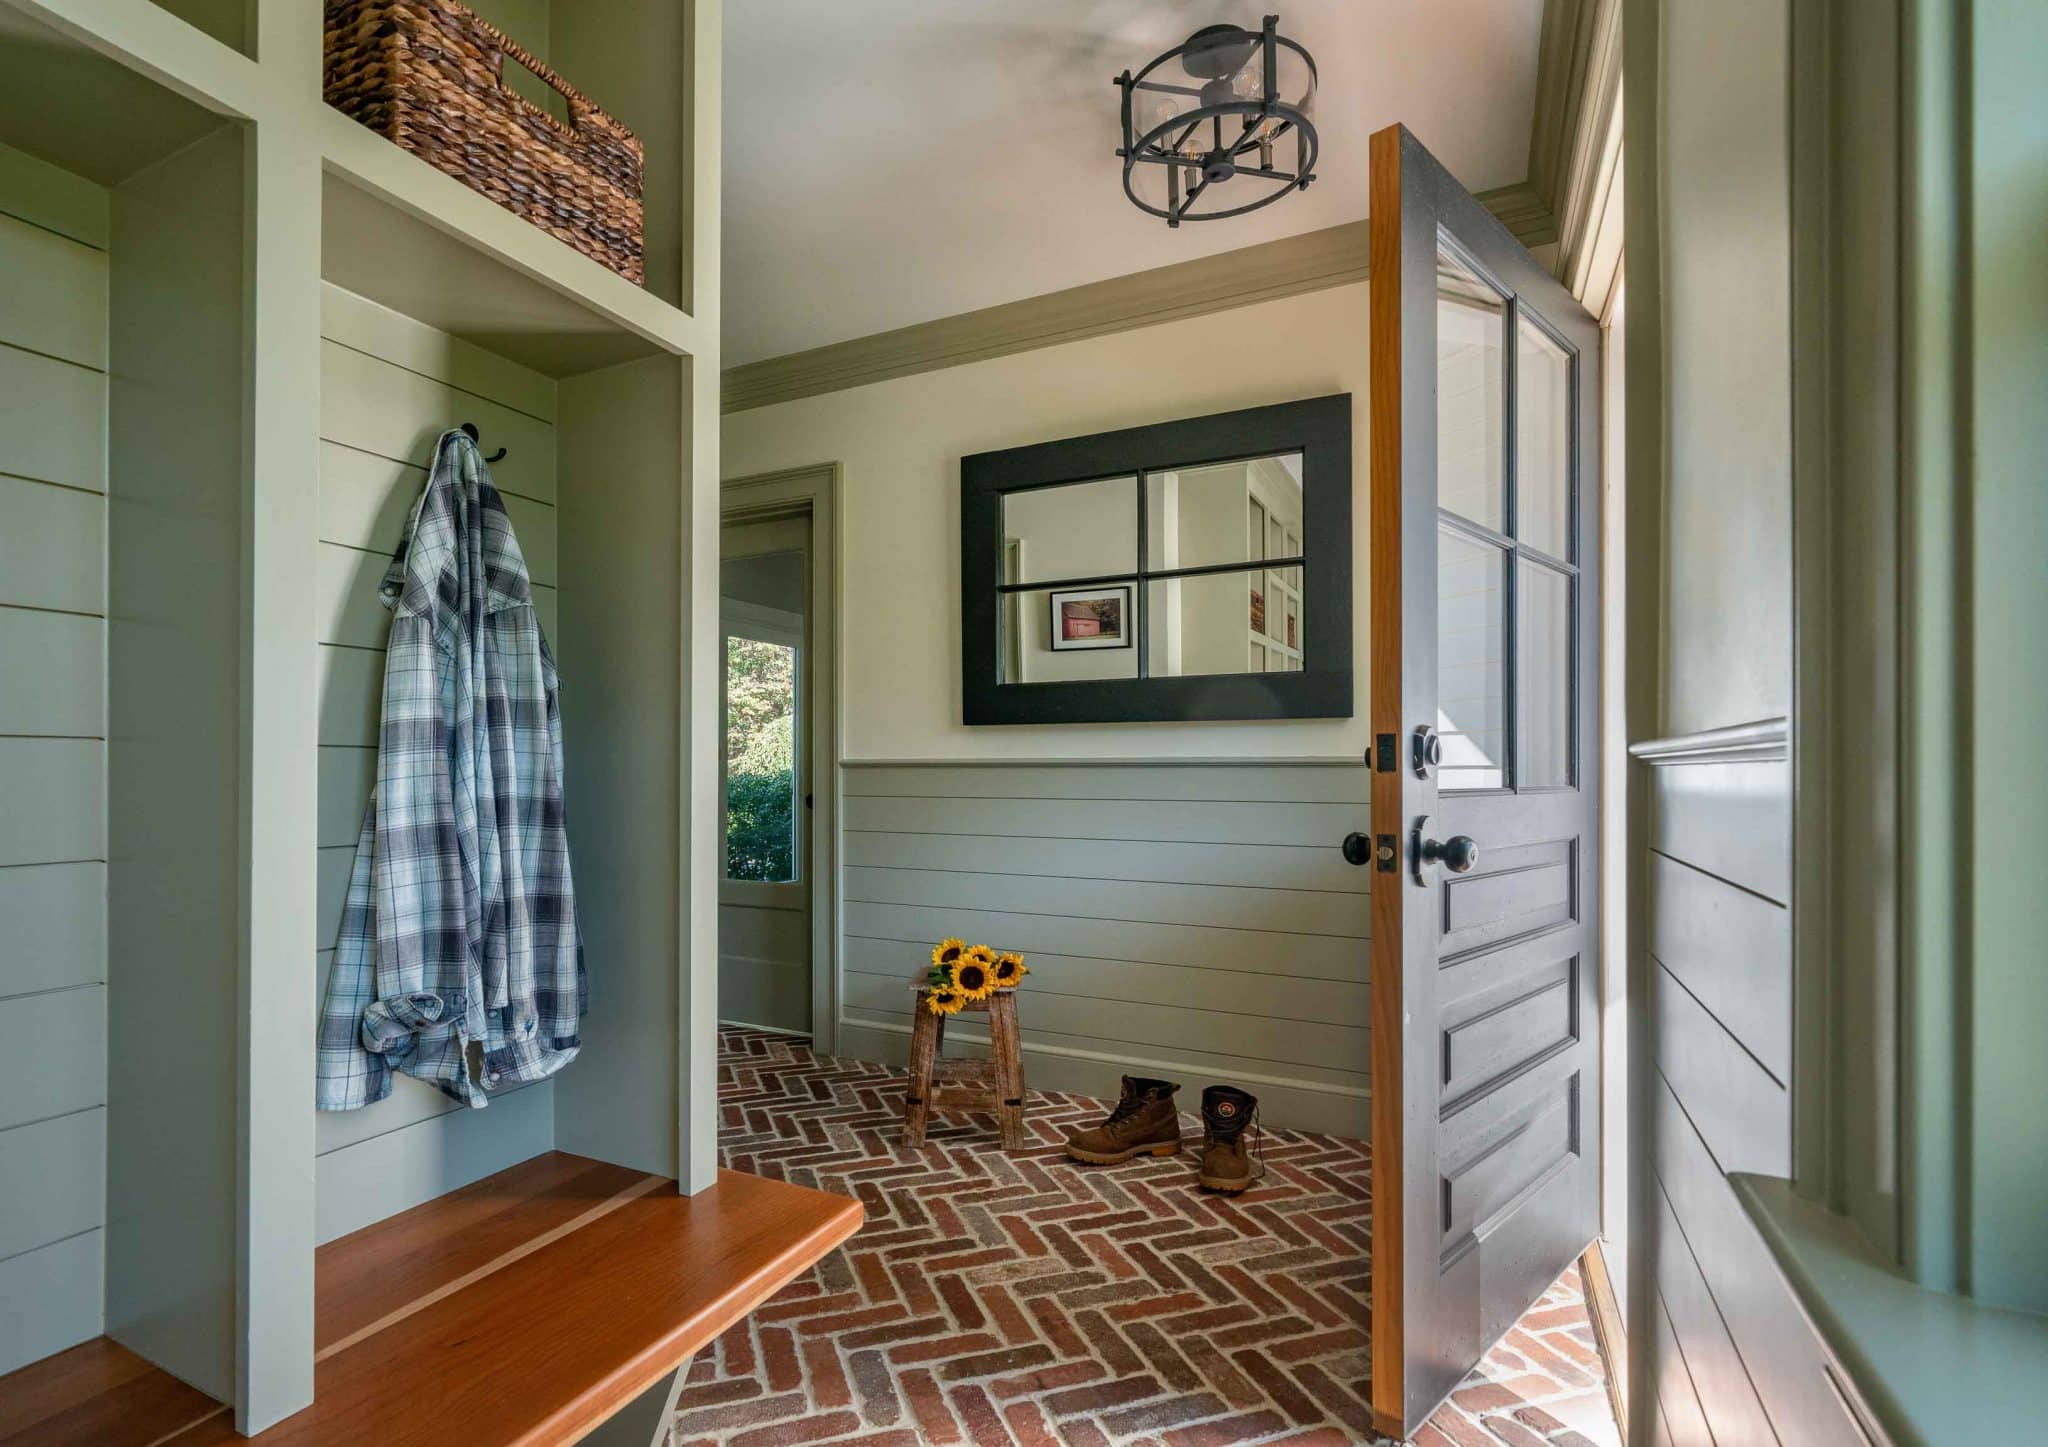 Farmhouse Flair Ipswich MA Mudroom